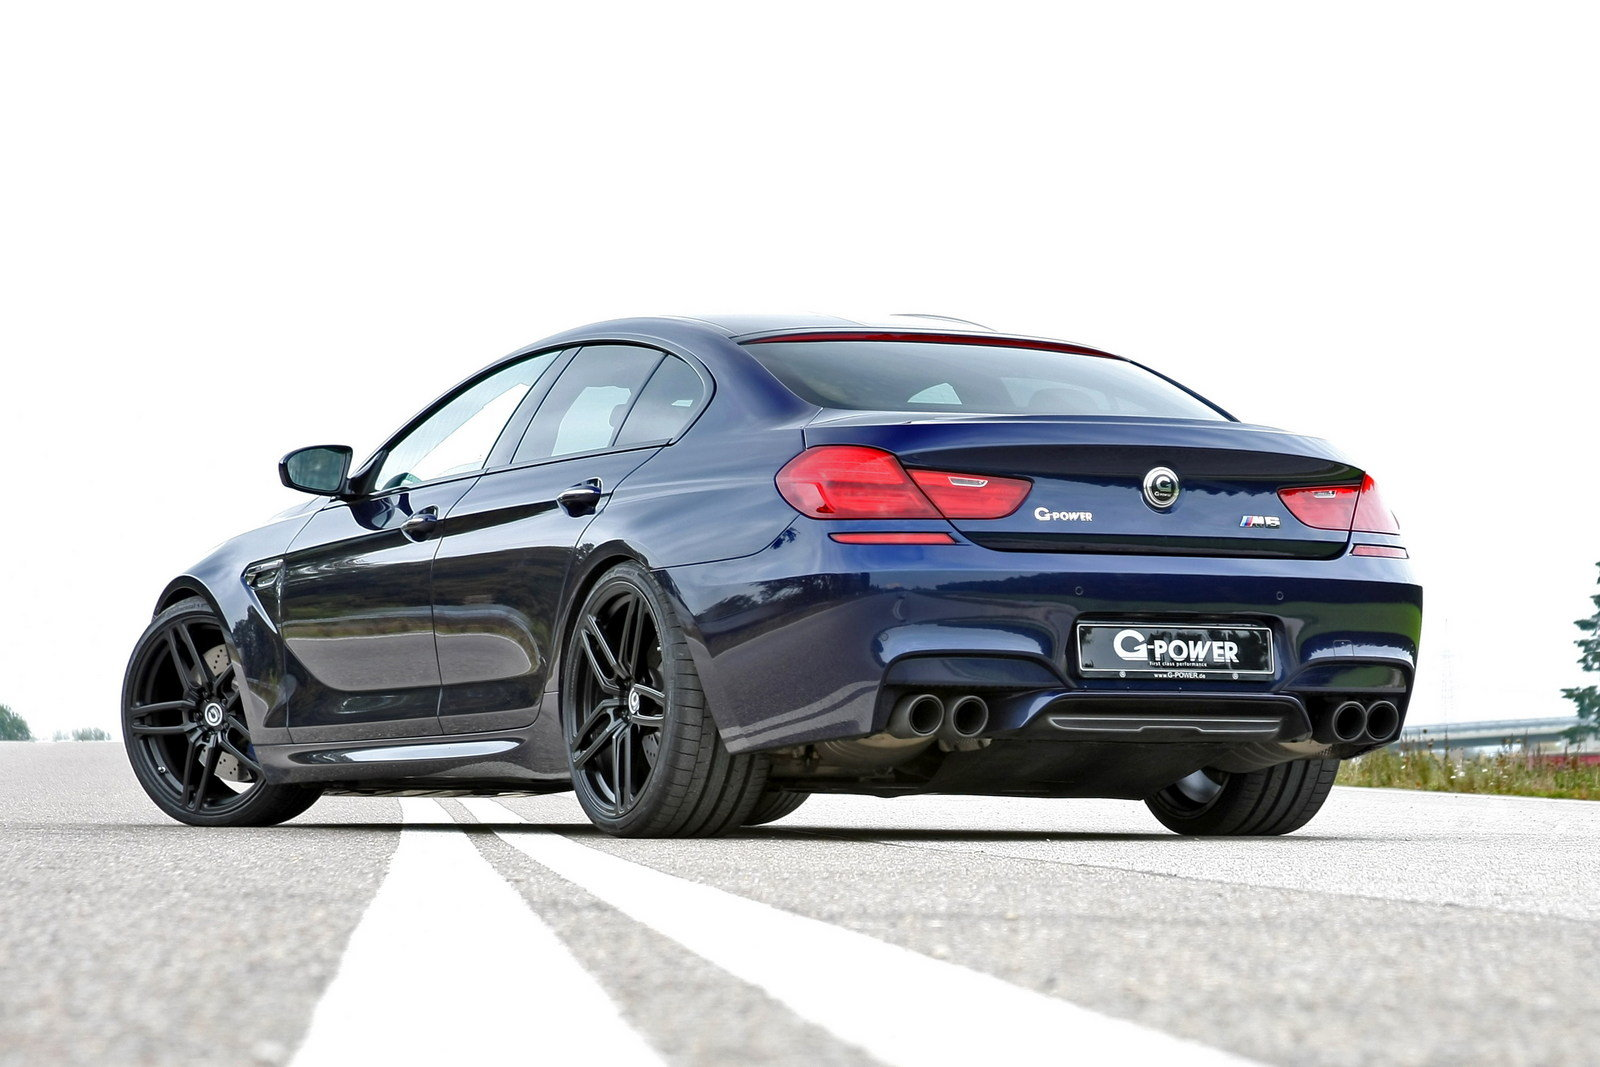 2016 Bmw M6 Gran Coupe #10